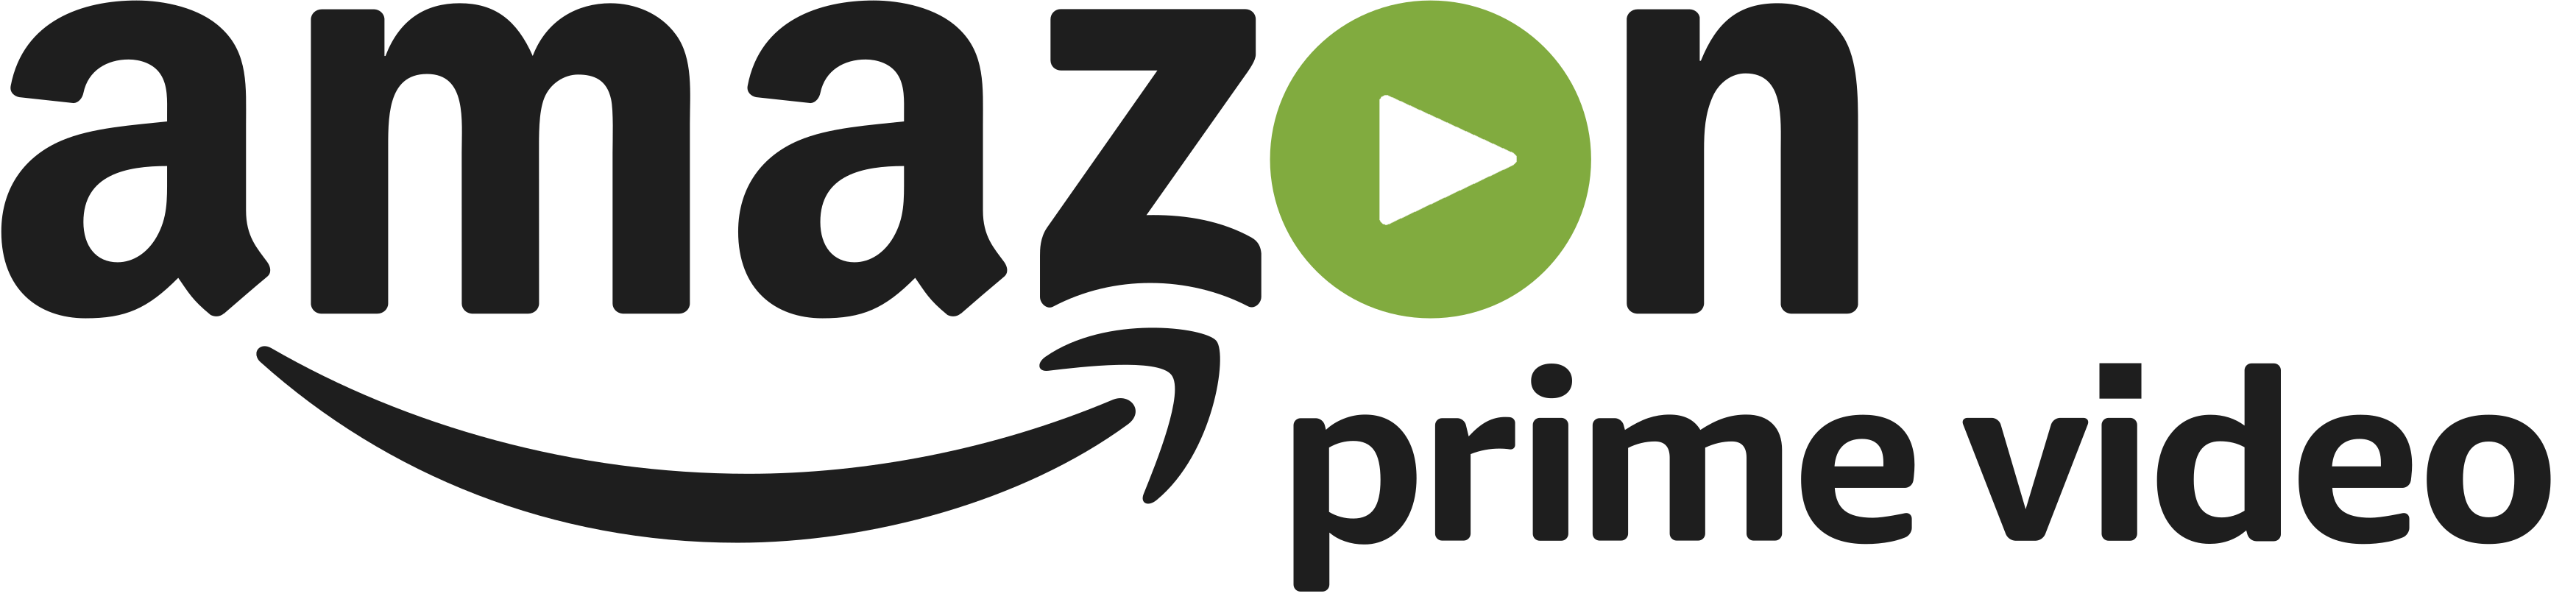 amazon prime video logo - Amazon Prime Video Logo